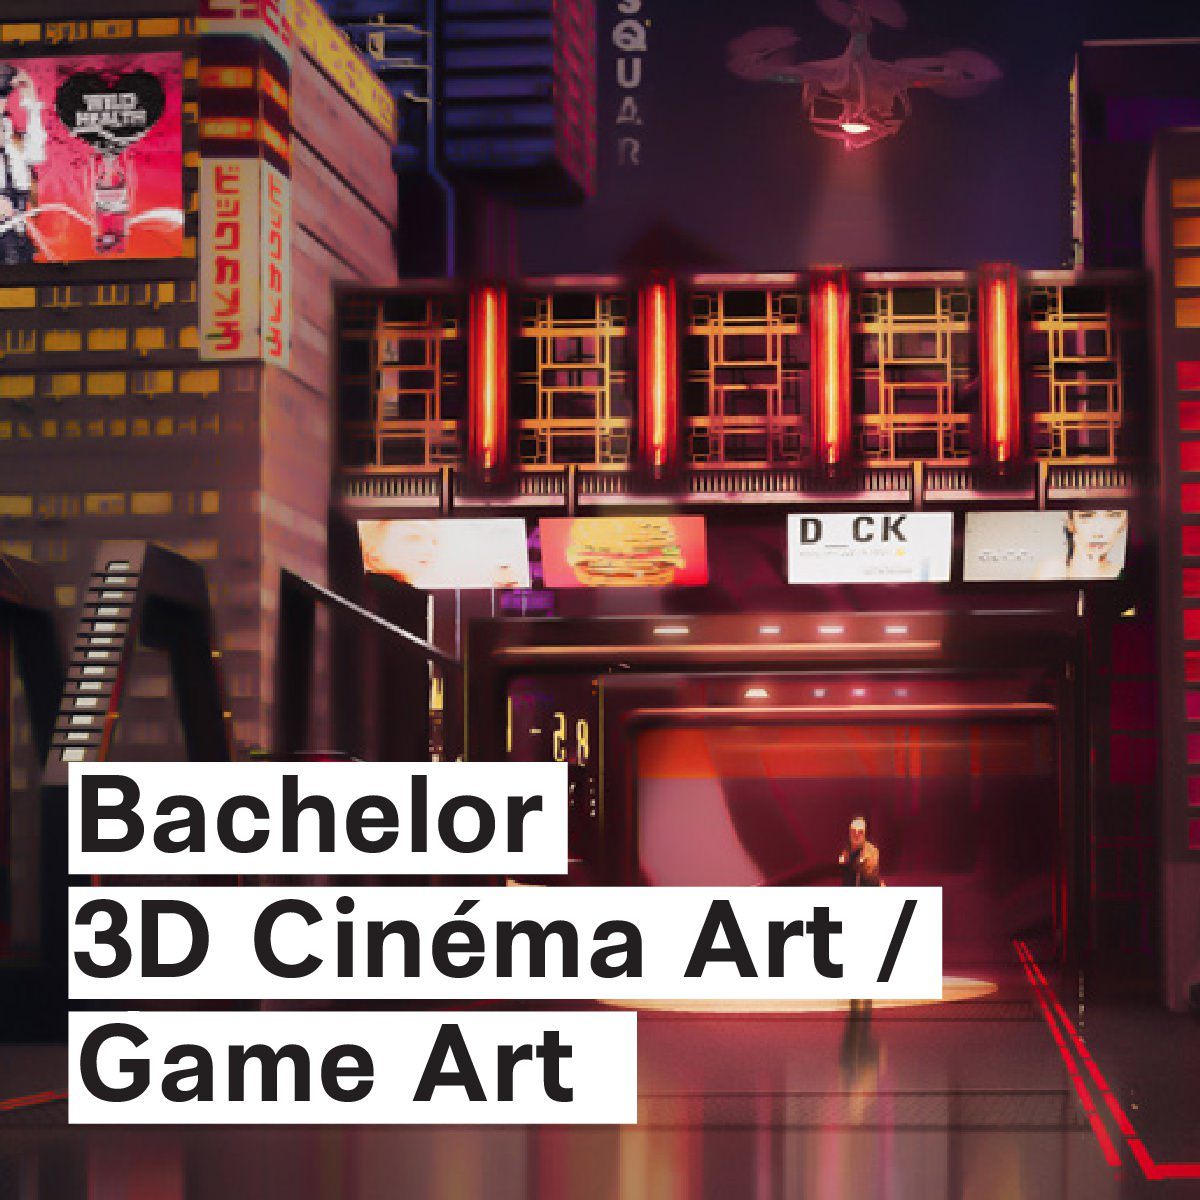 Bellecour Ecole - 3D Cinema Art - Game Art